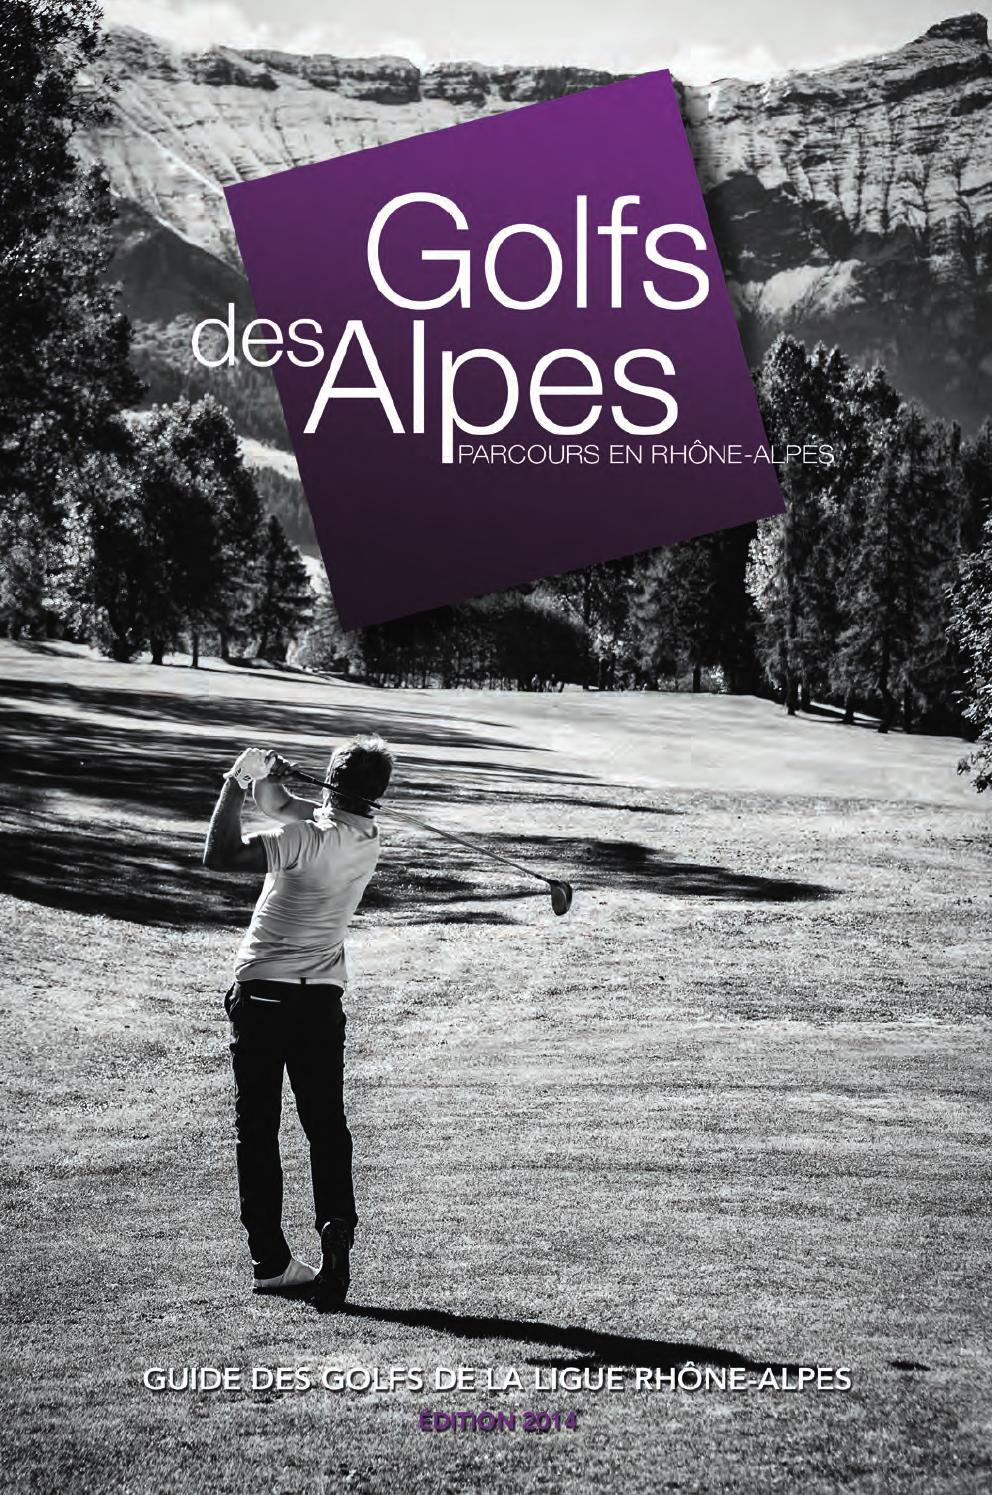 golfs des alpes 2014 by thecombox issuu. Black Bedroom Furniture Sets. Home Design Ideas